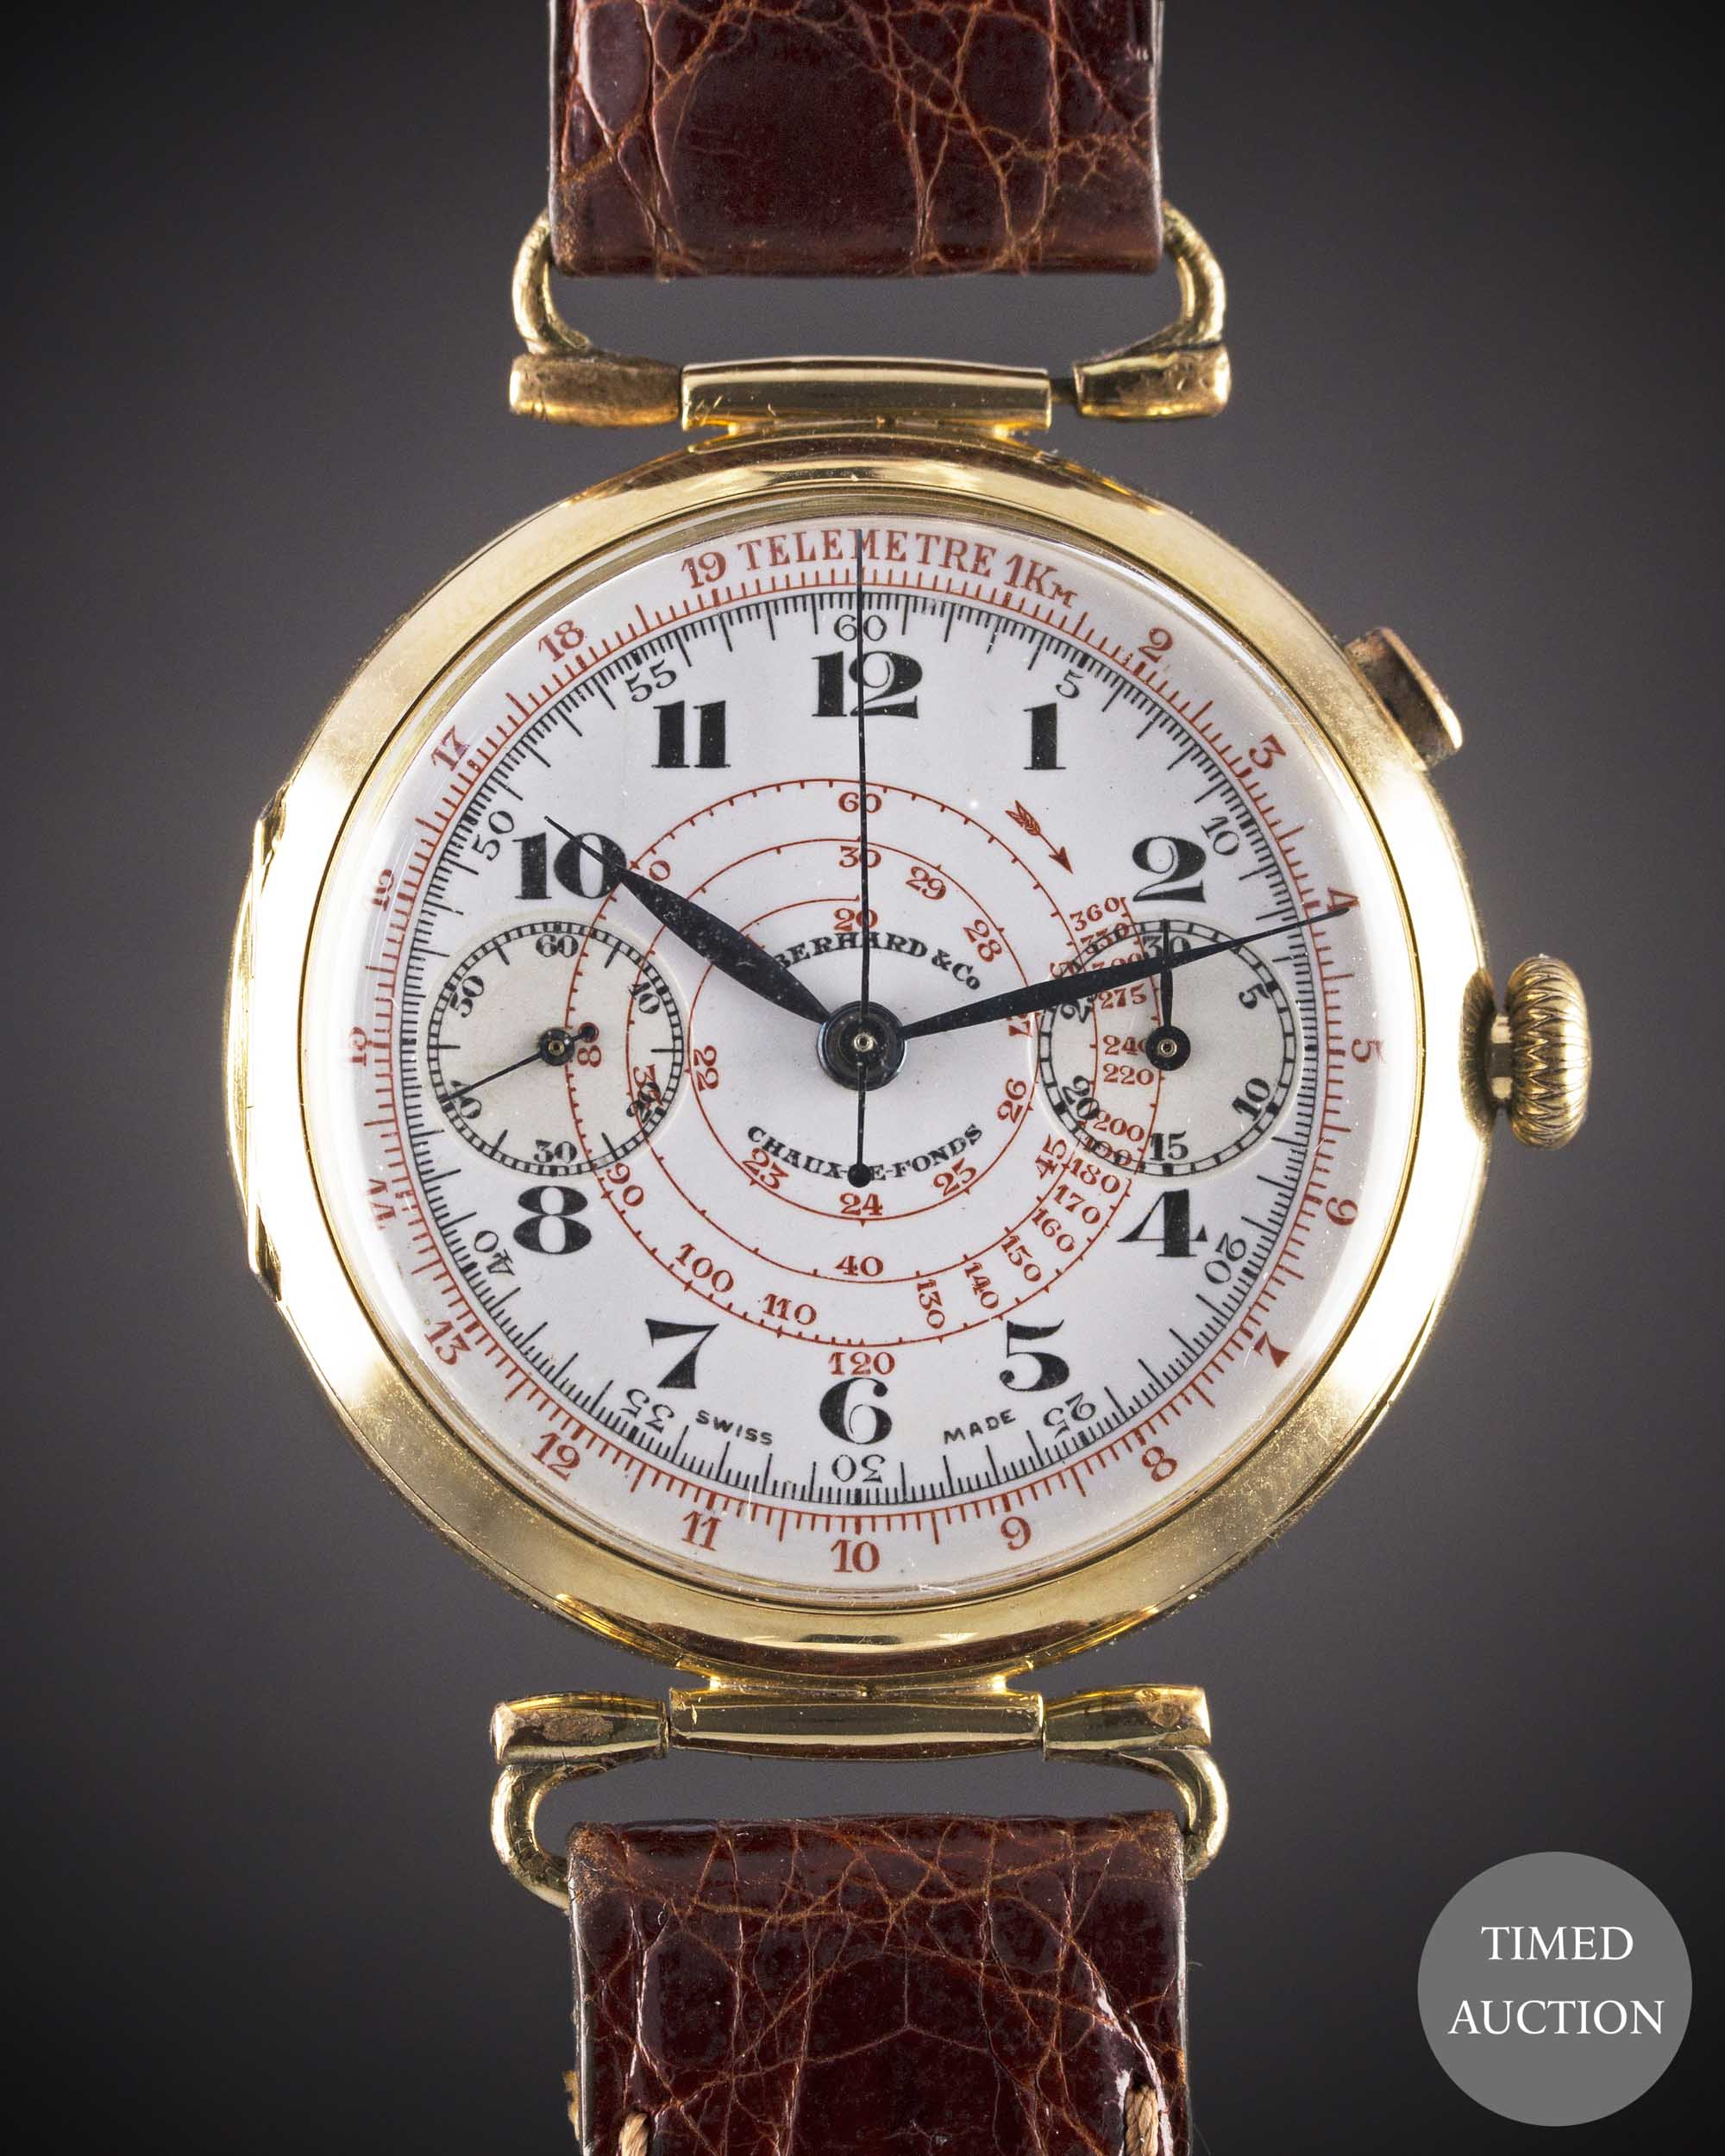 Lot 4 - A GENTLEMAN'S LARGE SIZE 18K SOLID GOLD EBERHARD & CO SINGLE BUTTON CHRONOGRAPH WRIST WATCH CIRCA